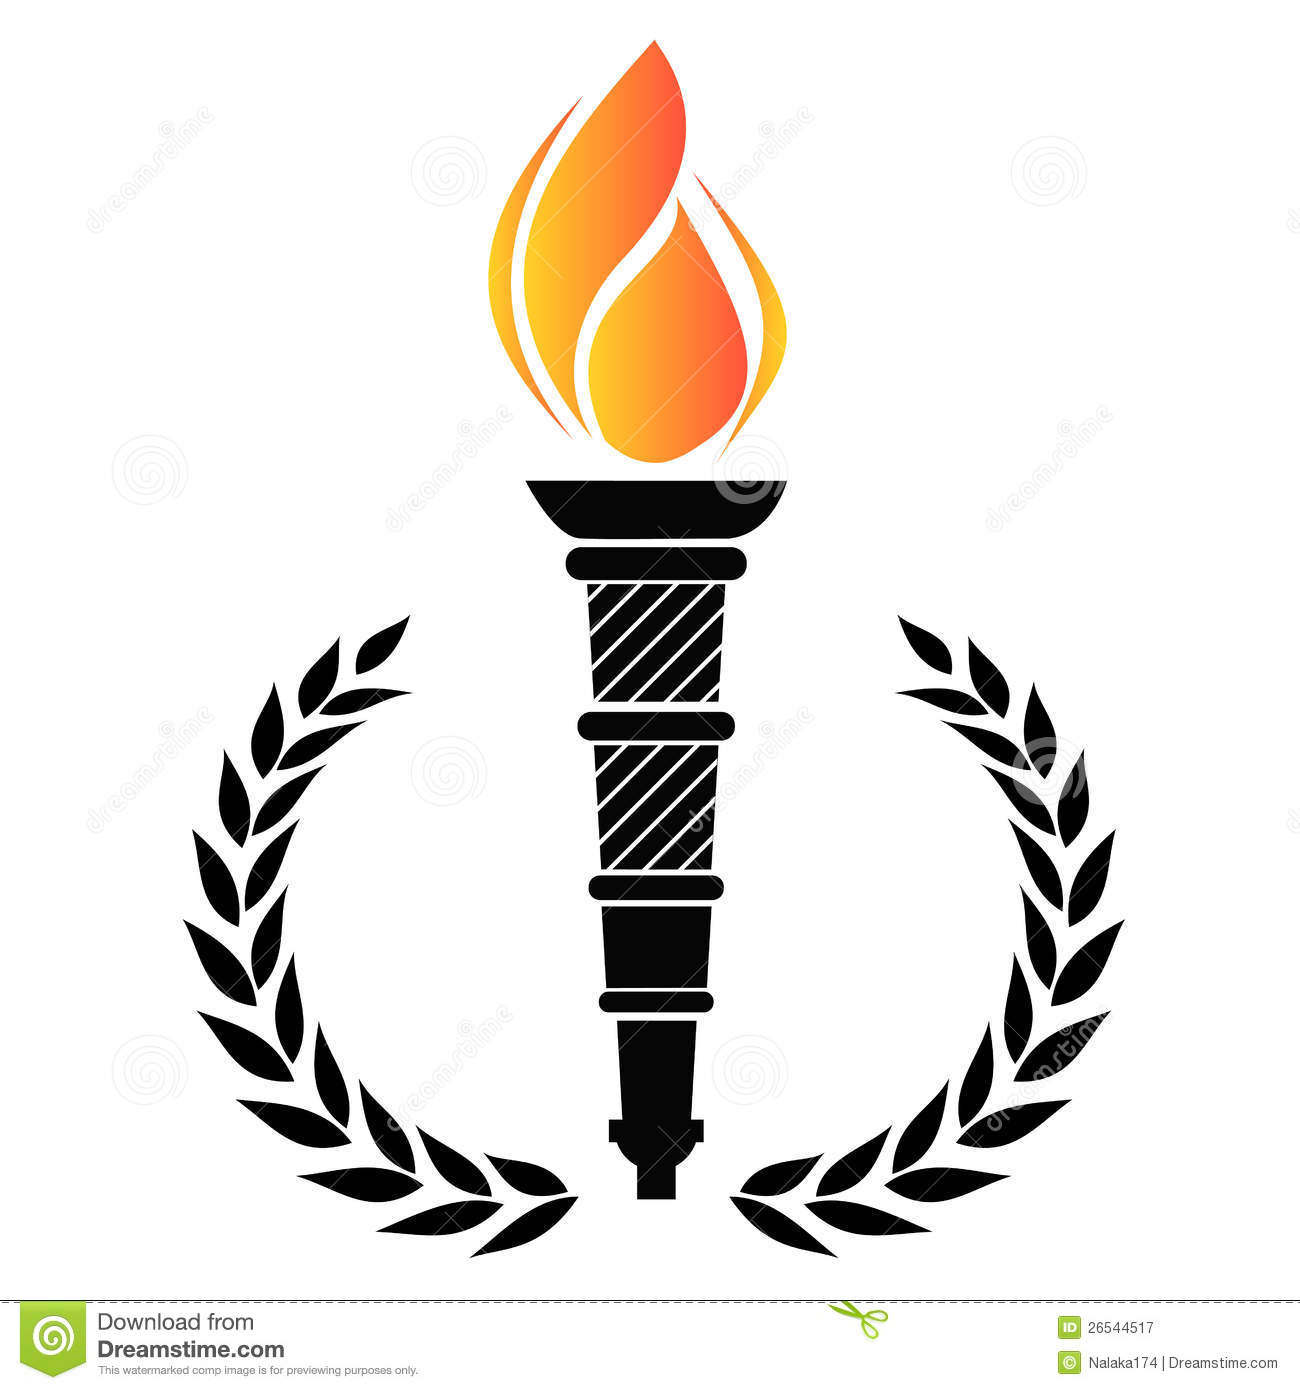 Olympic Torch Clipart Free.